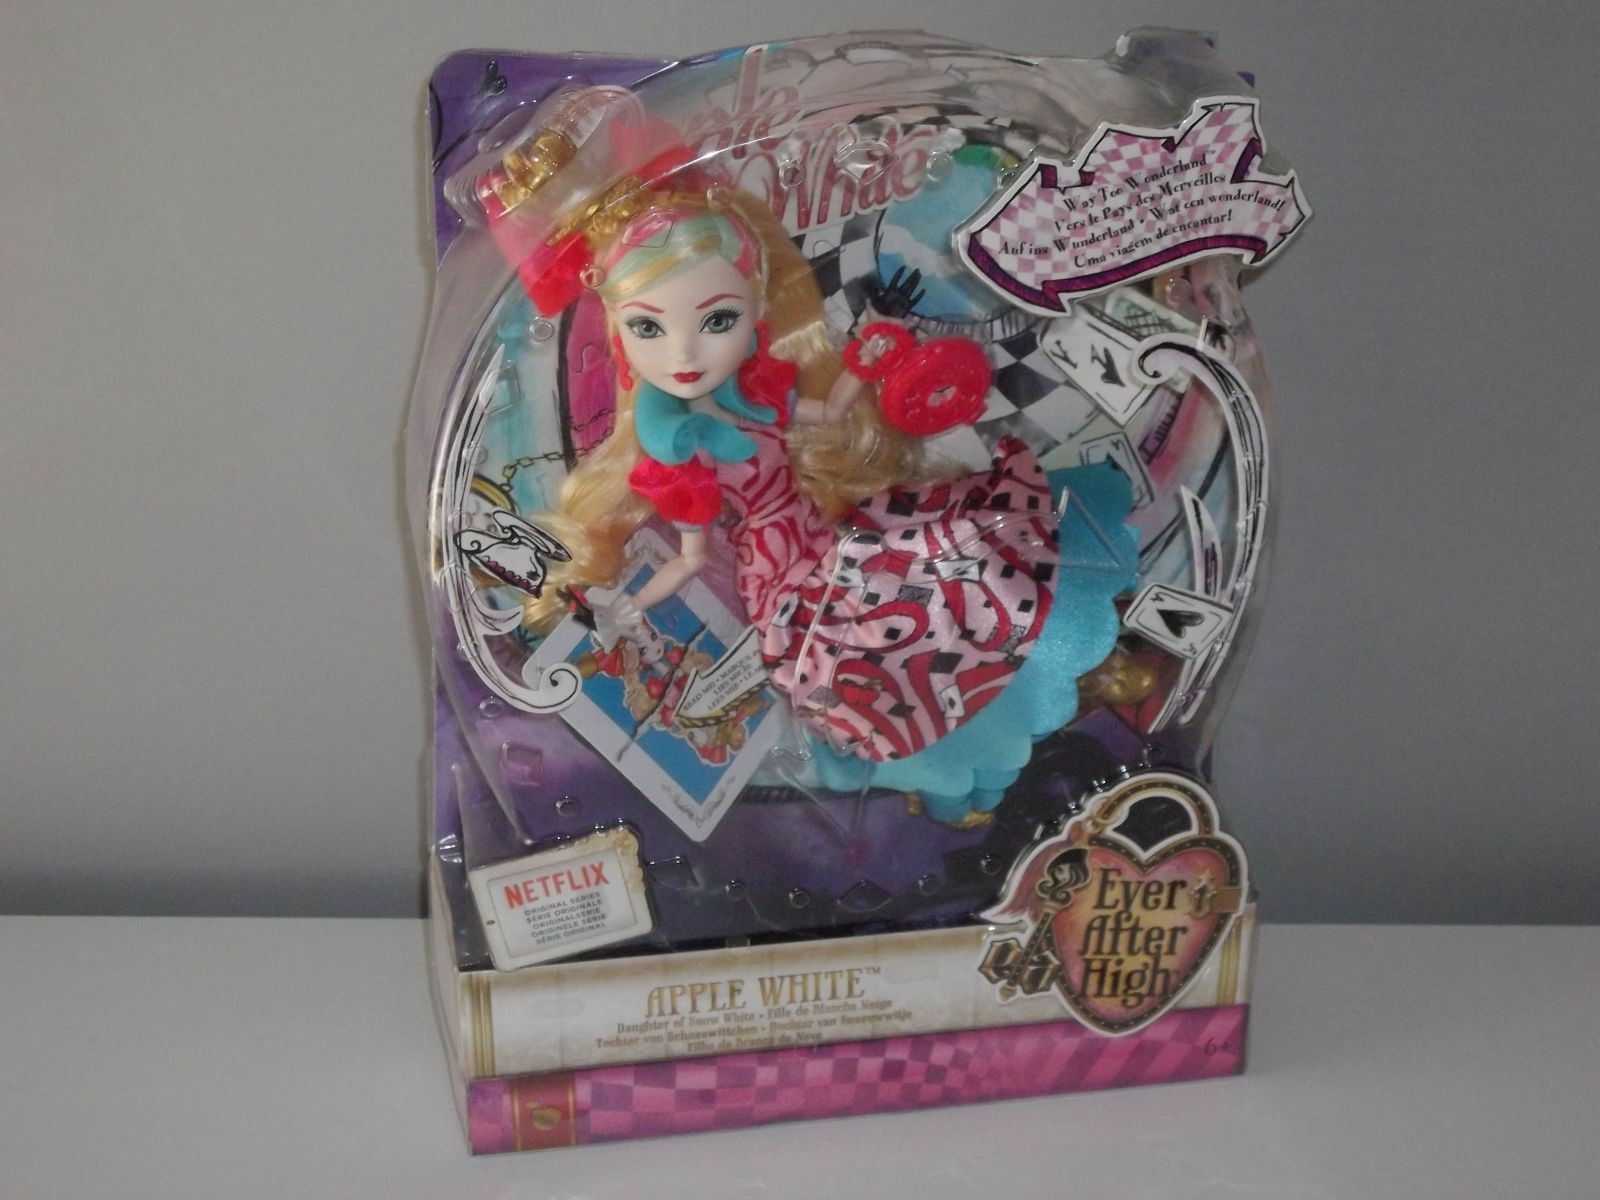 BAMBOLA EVER AFTER HIGH WAY TOO WONDERLAND NEW NEVER OPENED APPLE Weiß